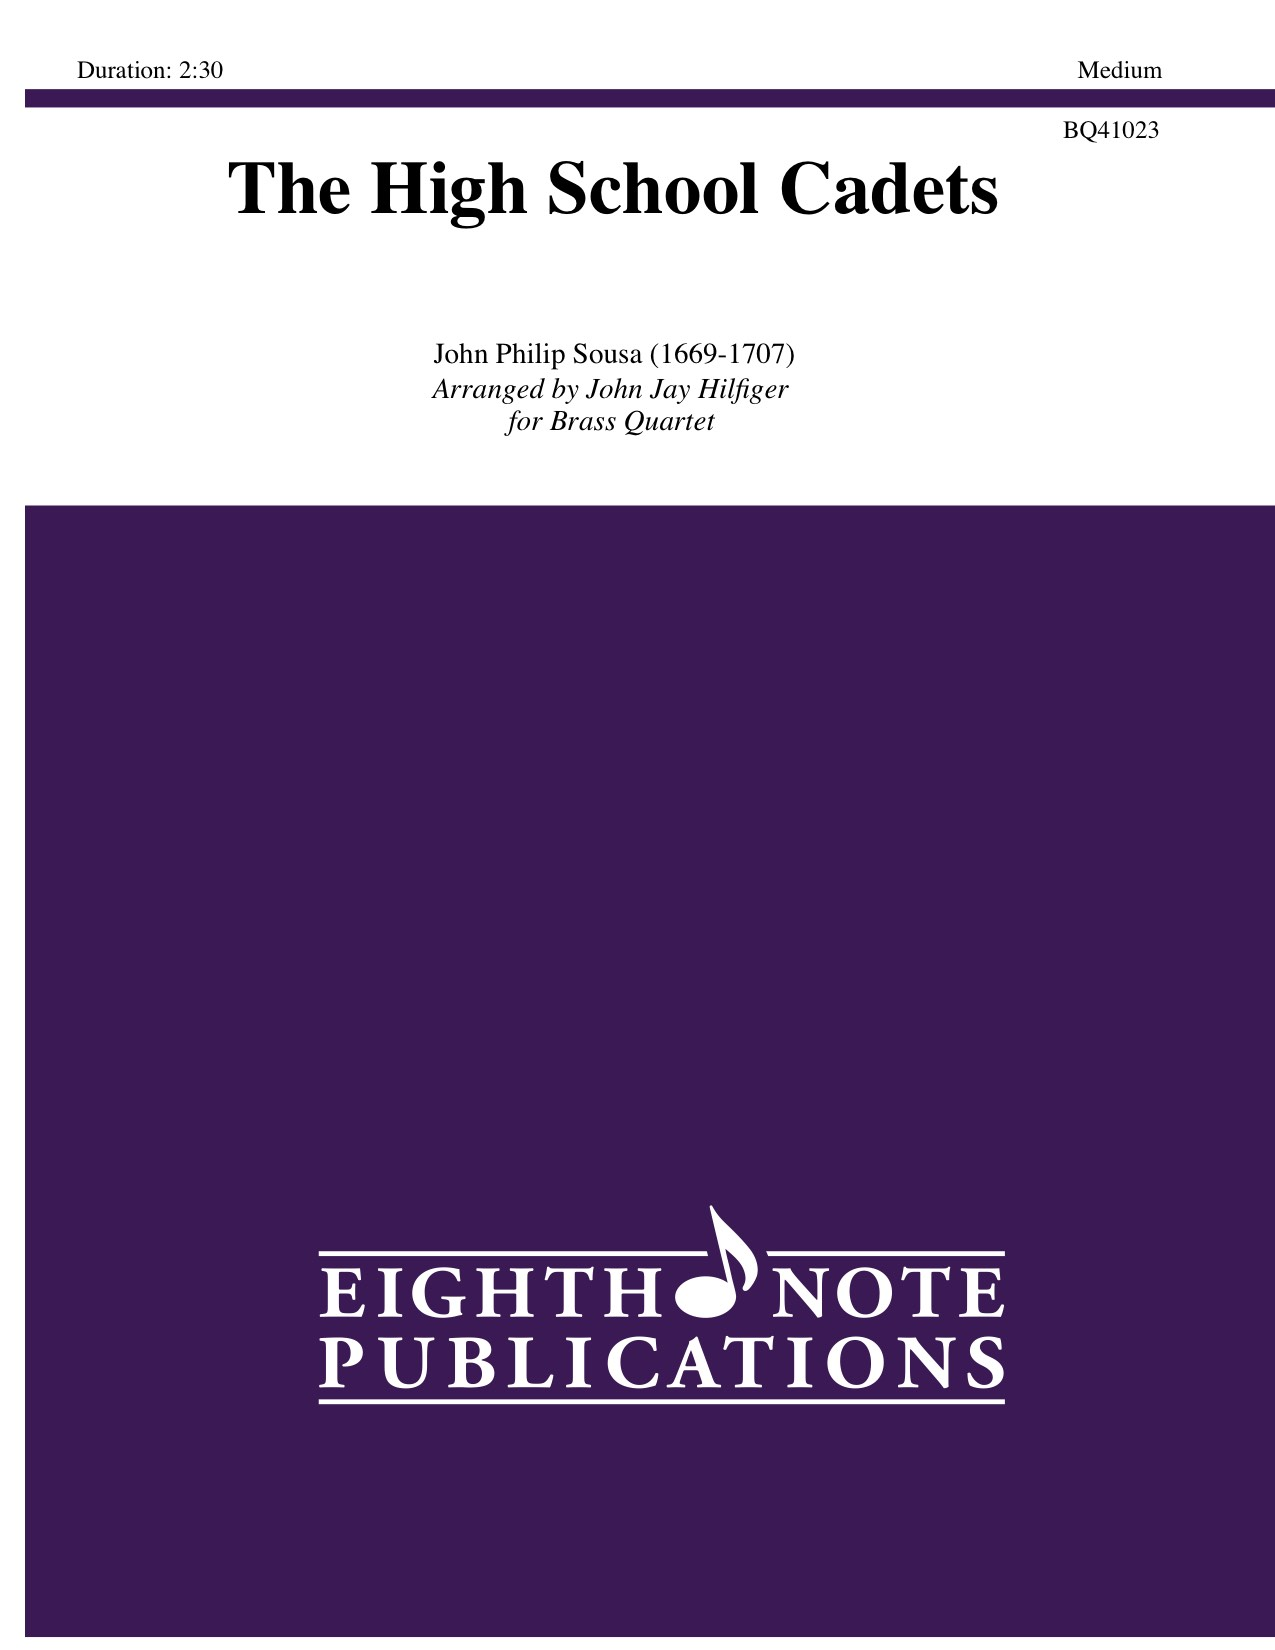 Eighth Note Publications